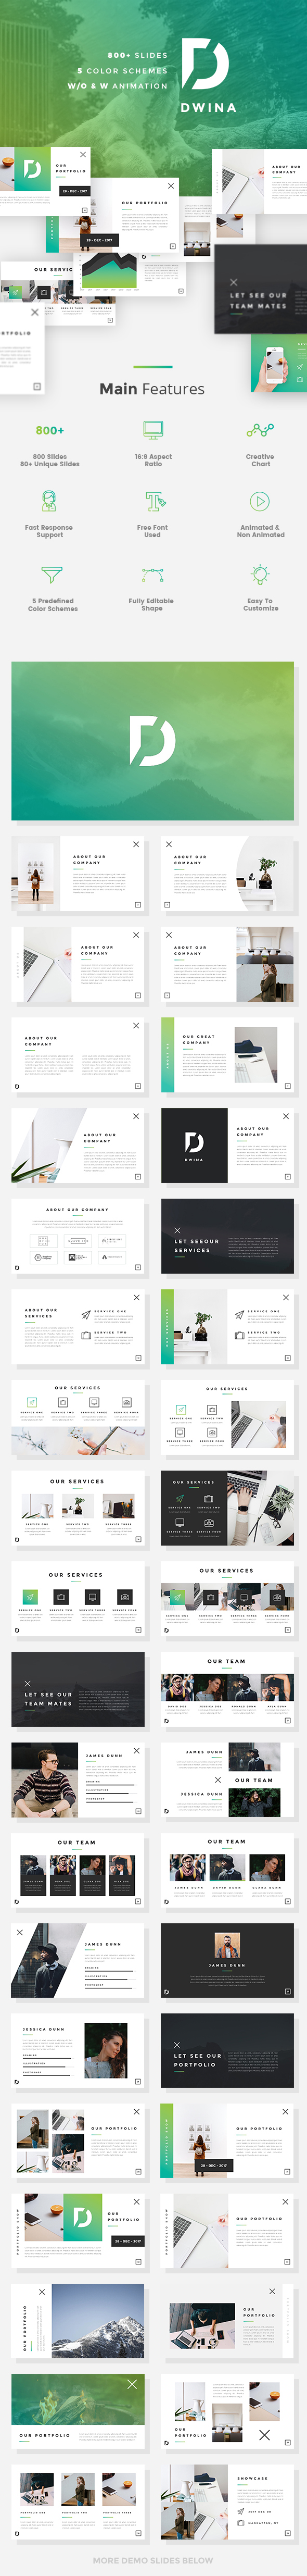 Dwina - Pitch Deck PowerPoint Template - Pitch Deck PowerPoint Templates